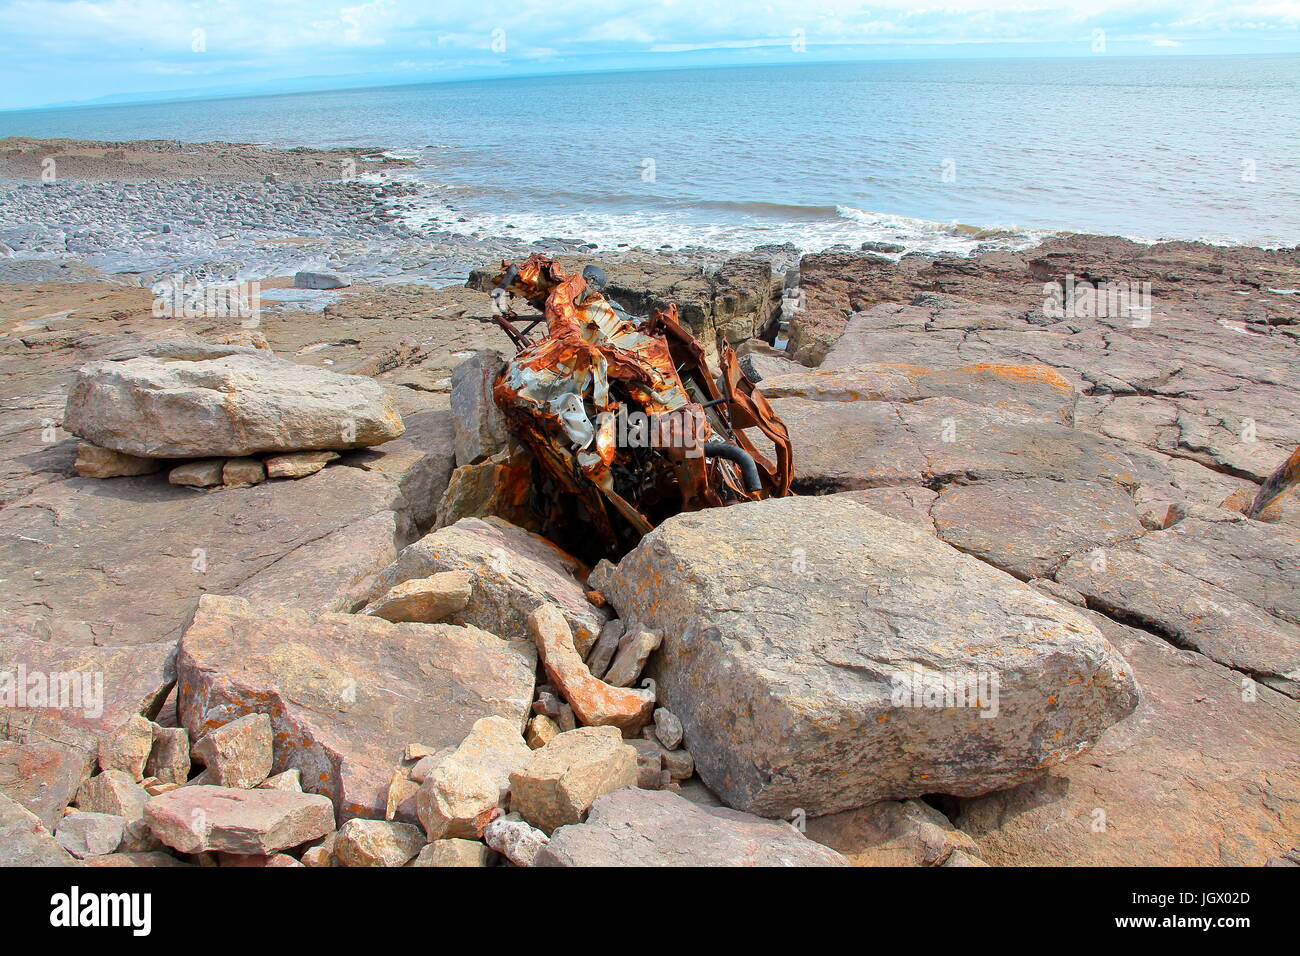 The wreckage of a Beach Buggy firmly wedged into a crevice in the beach rocks just above the high water mark on - Stock Image